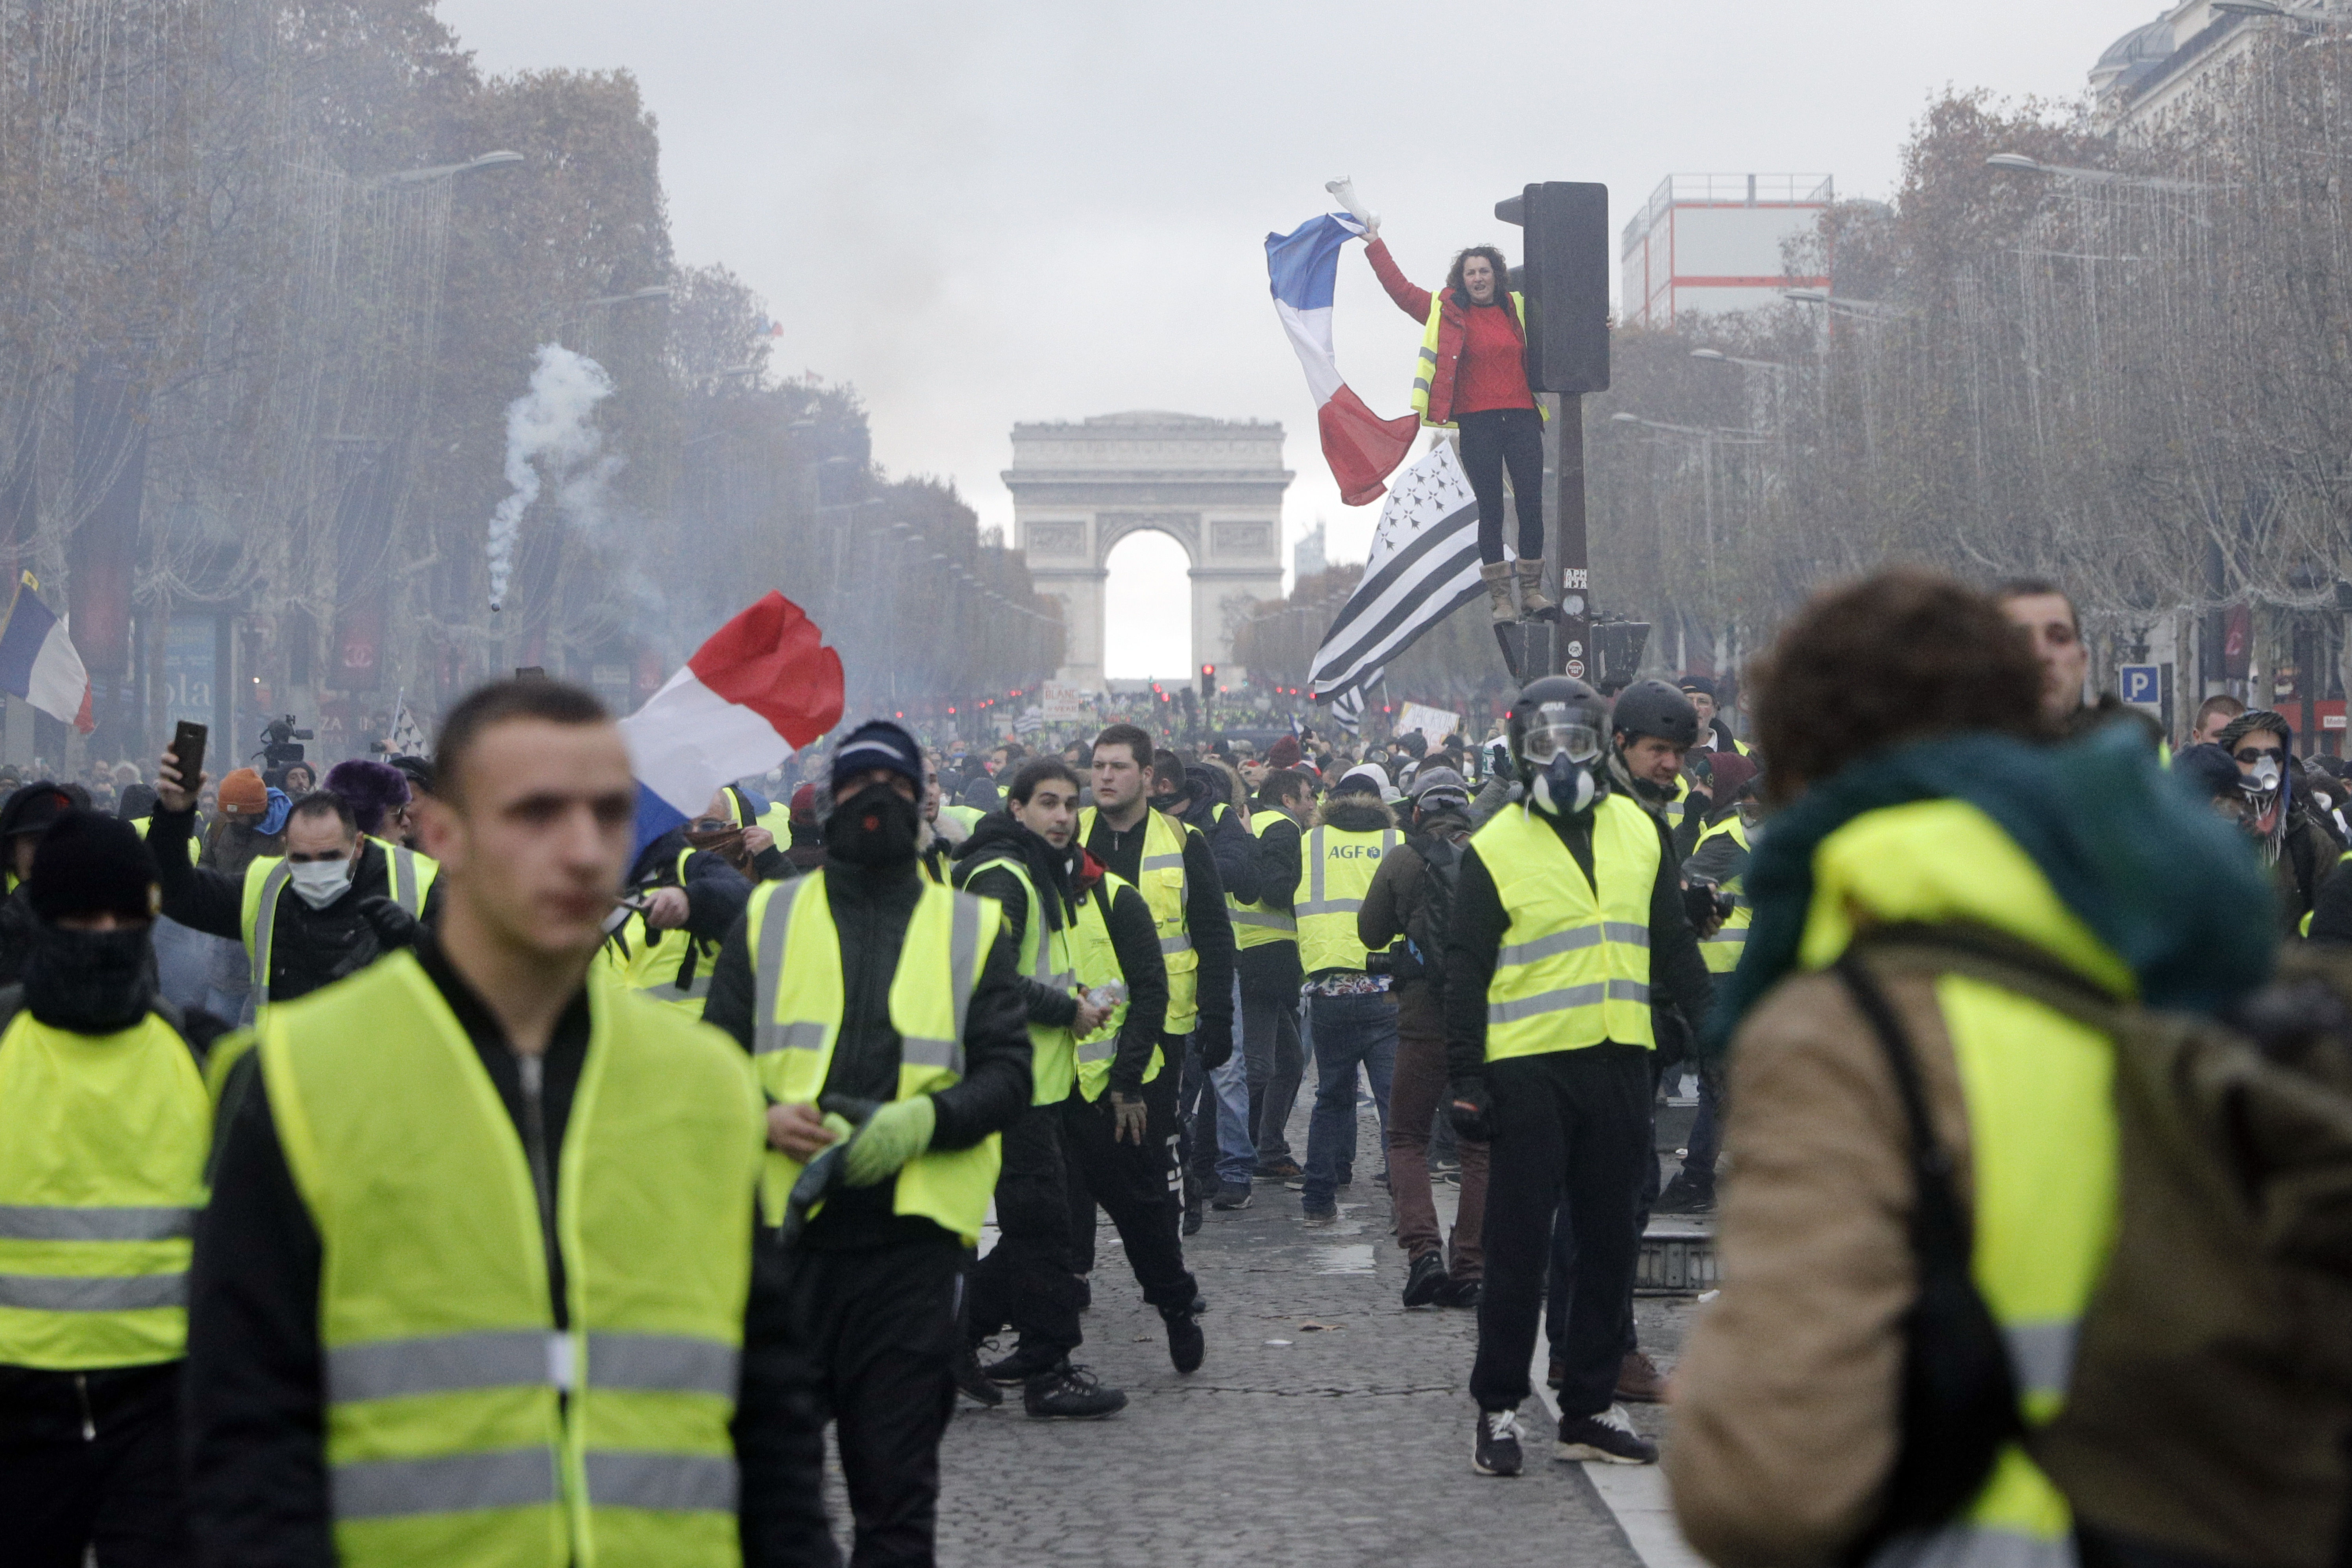 French fuel fight: Prime minister offers to meet protesters